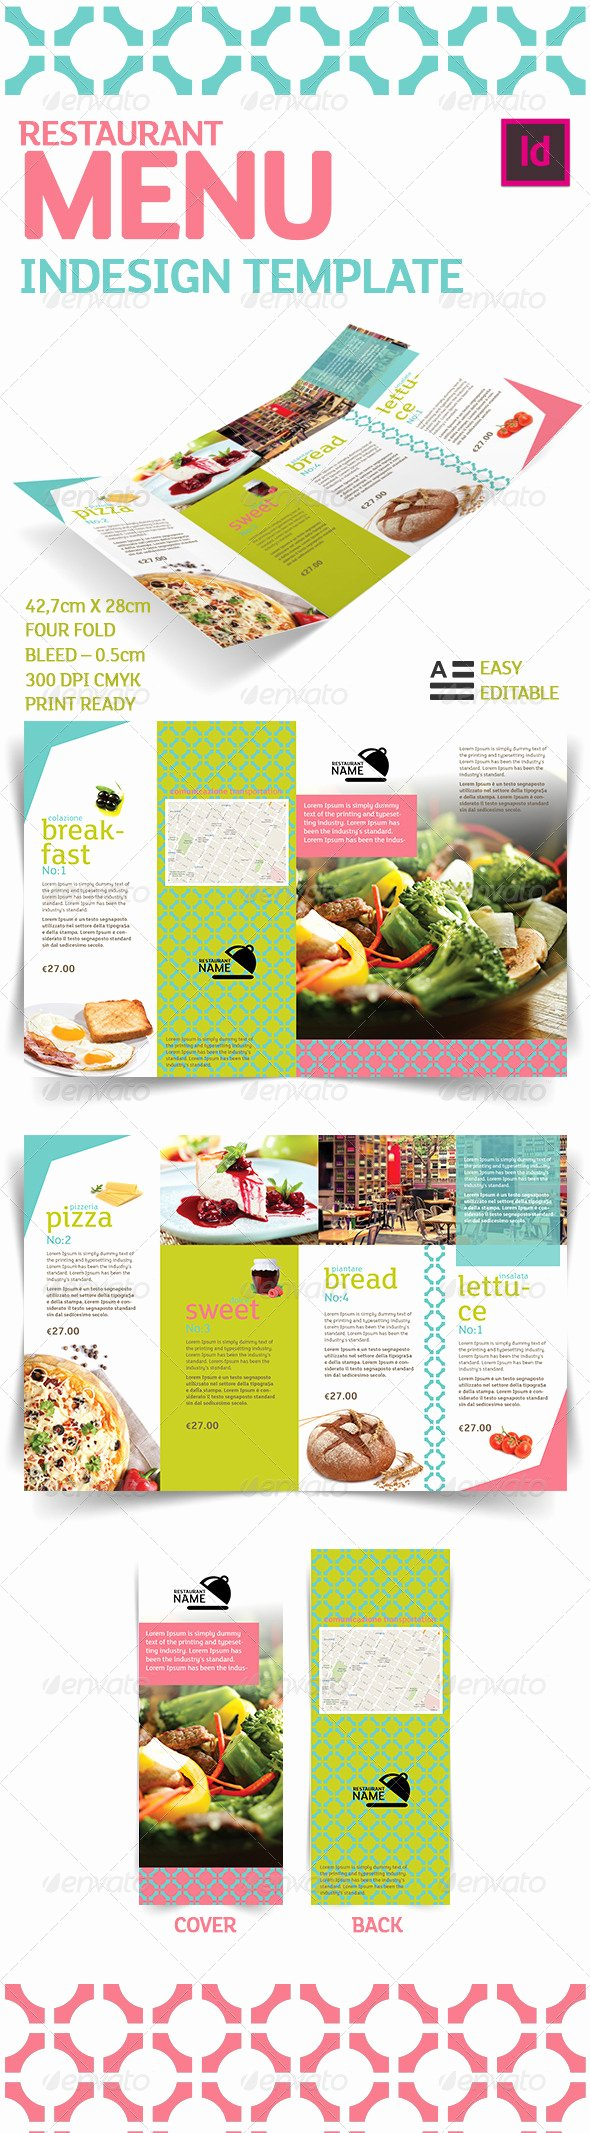 Indesign Menu Template Free Unique Restaurant Menu Indesign Template